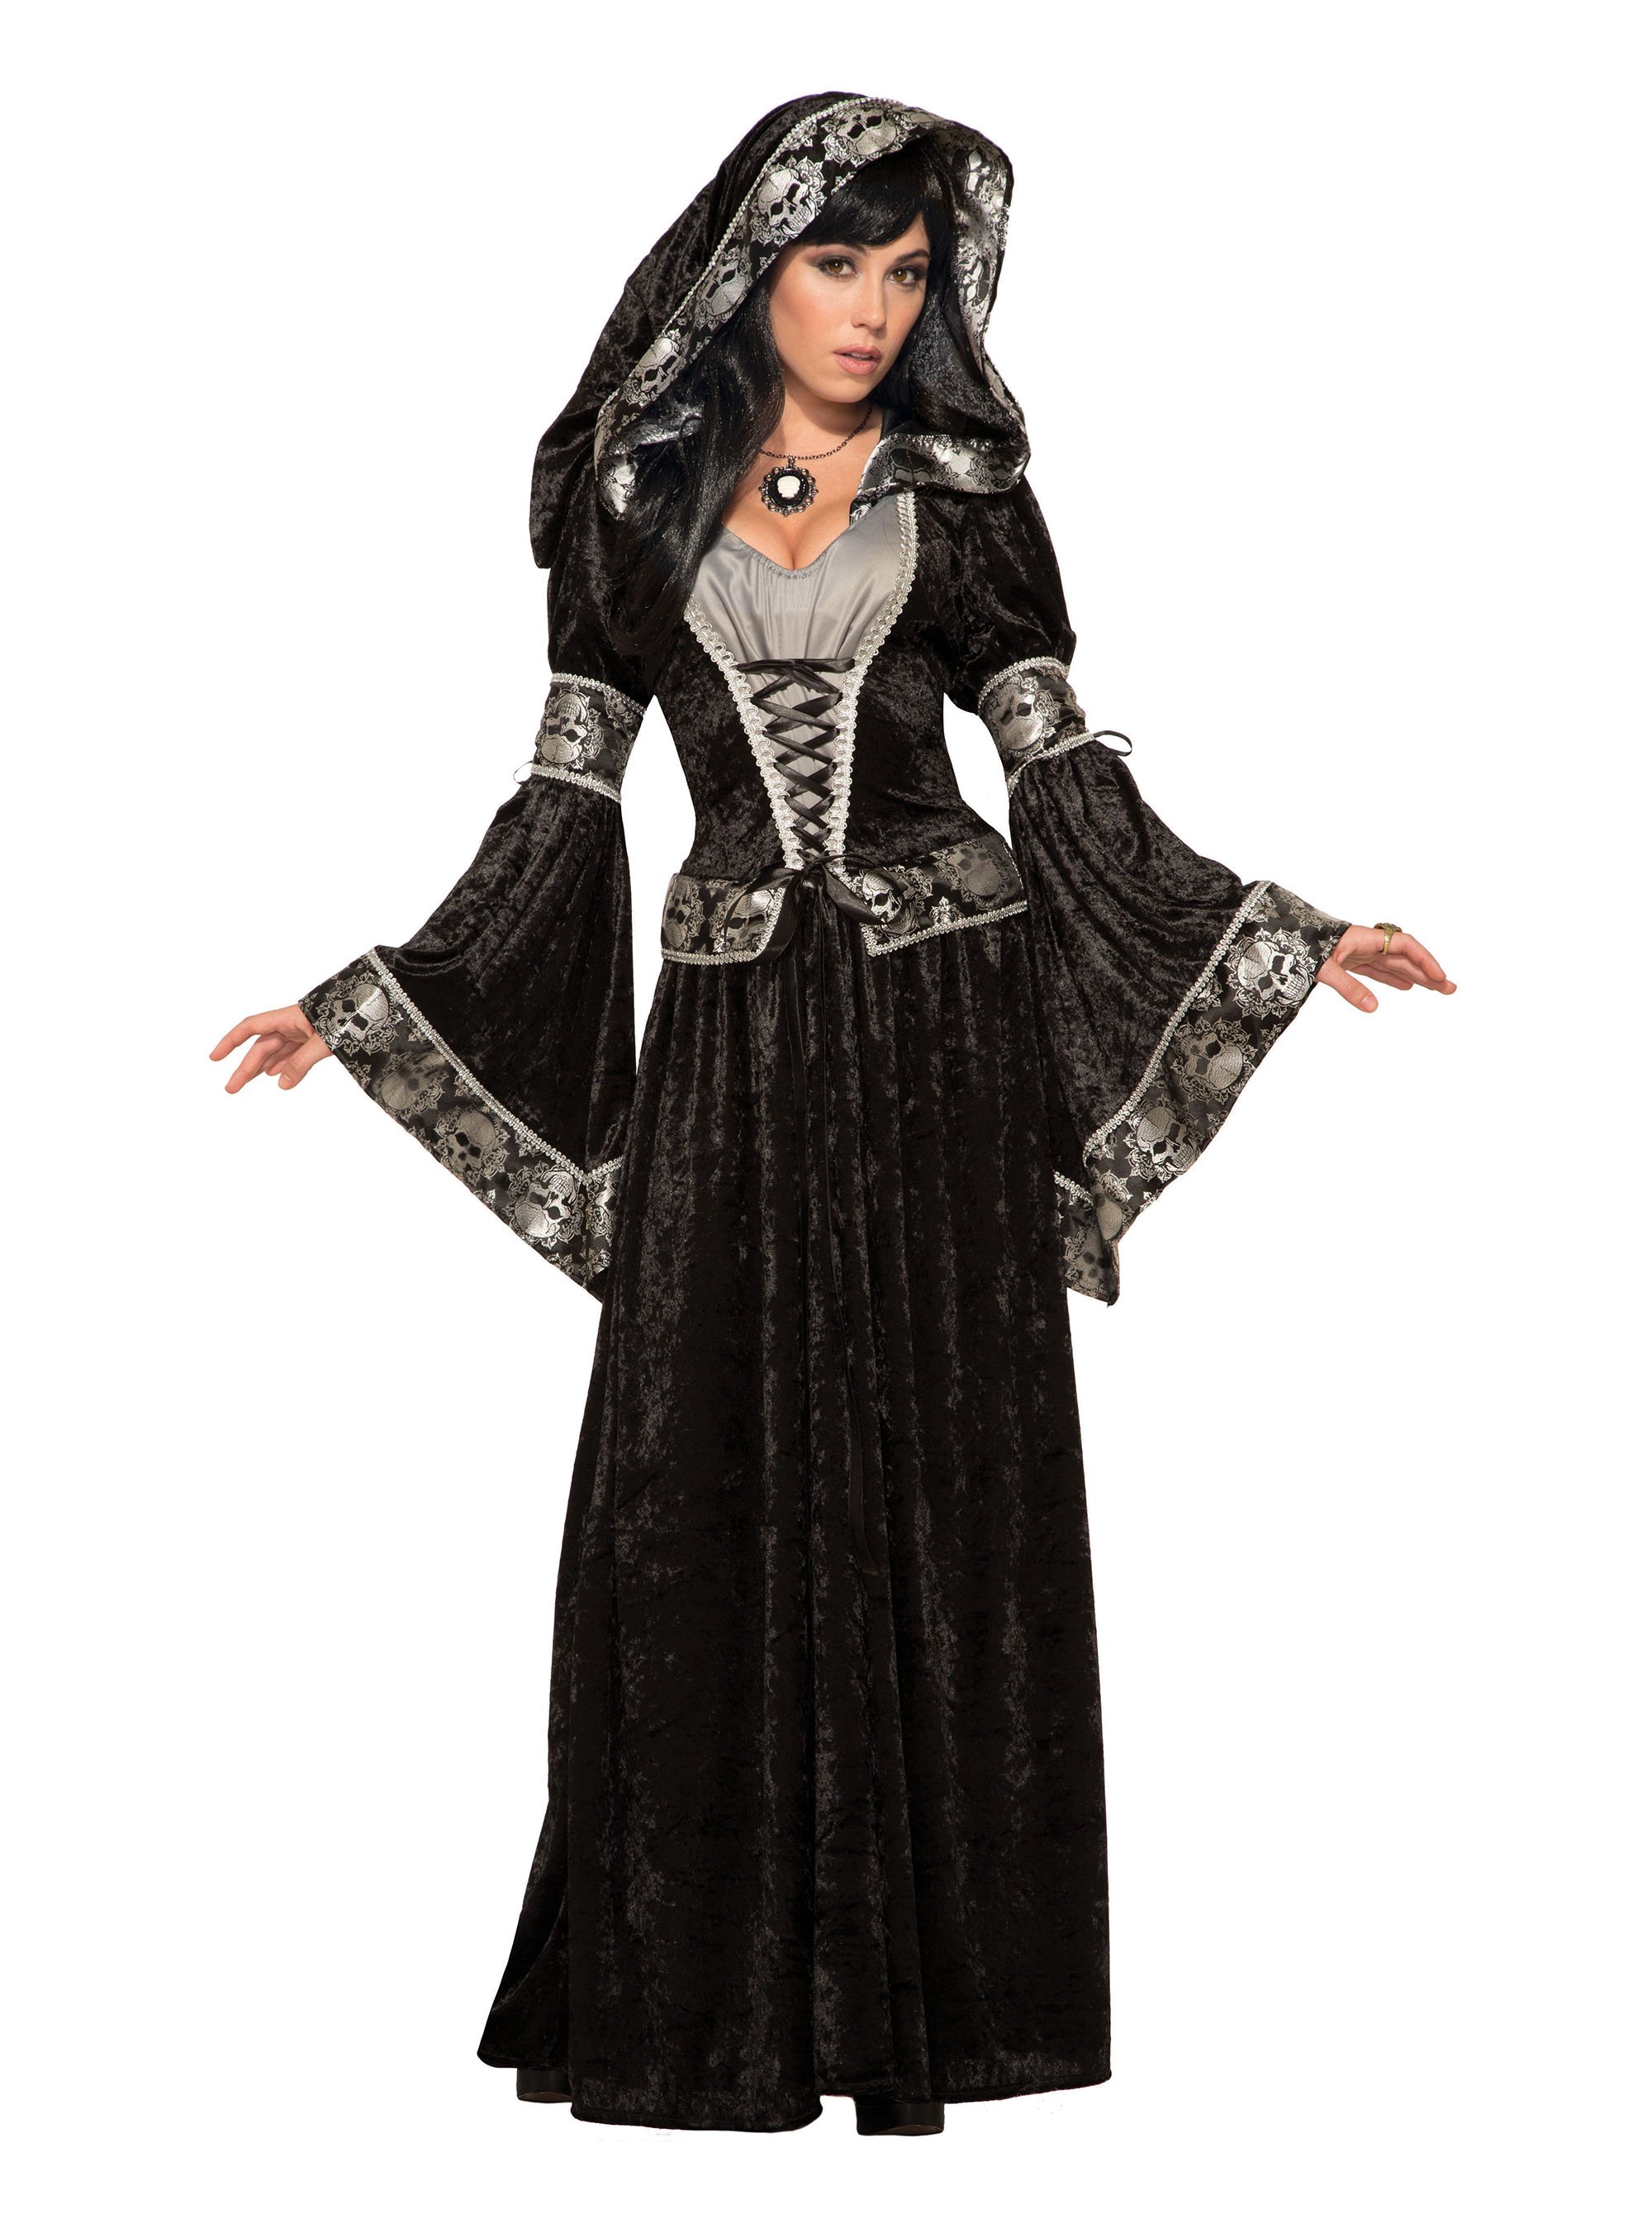 Dark Sorceress Halloween Fancy Dress Costume Outfit Womens Adult UK 10-12